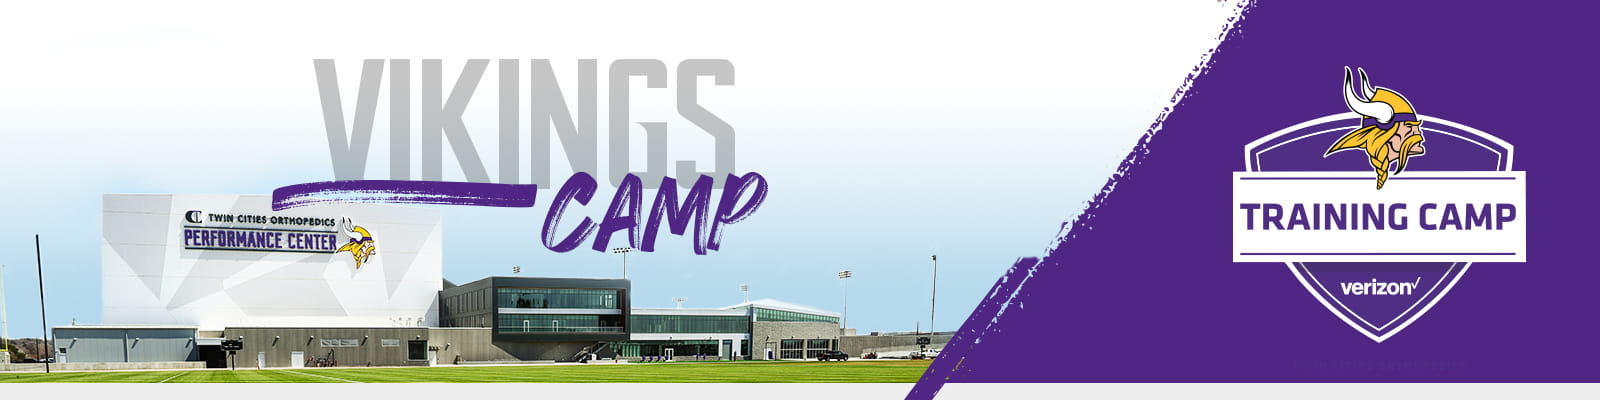 graphic about Minnesota Vikings Printable Schedule referred to as Vikings Exercising Camp Educate Routine Minnesota Vikings